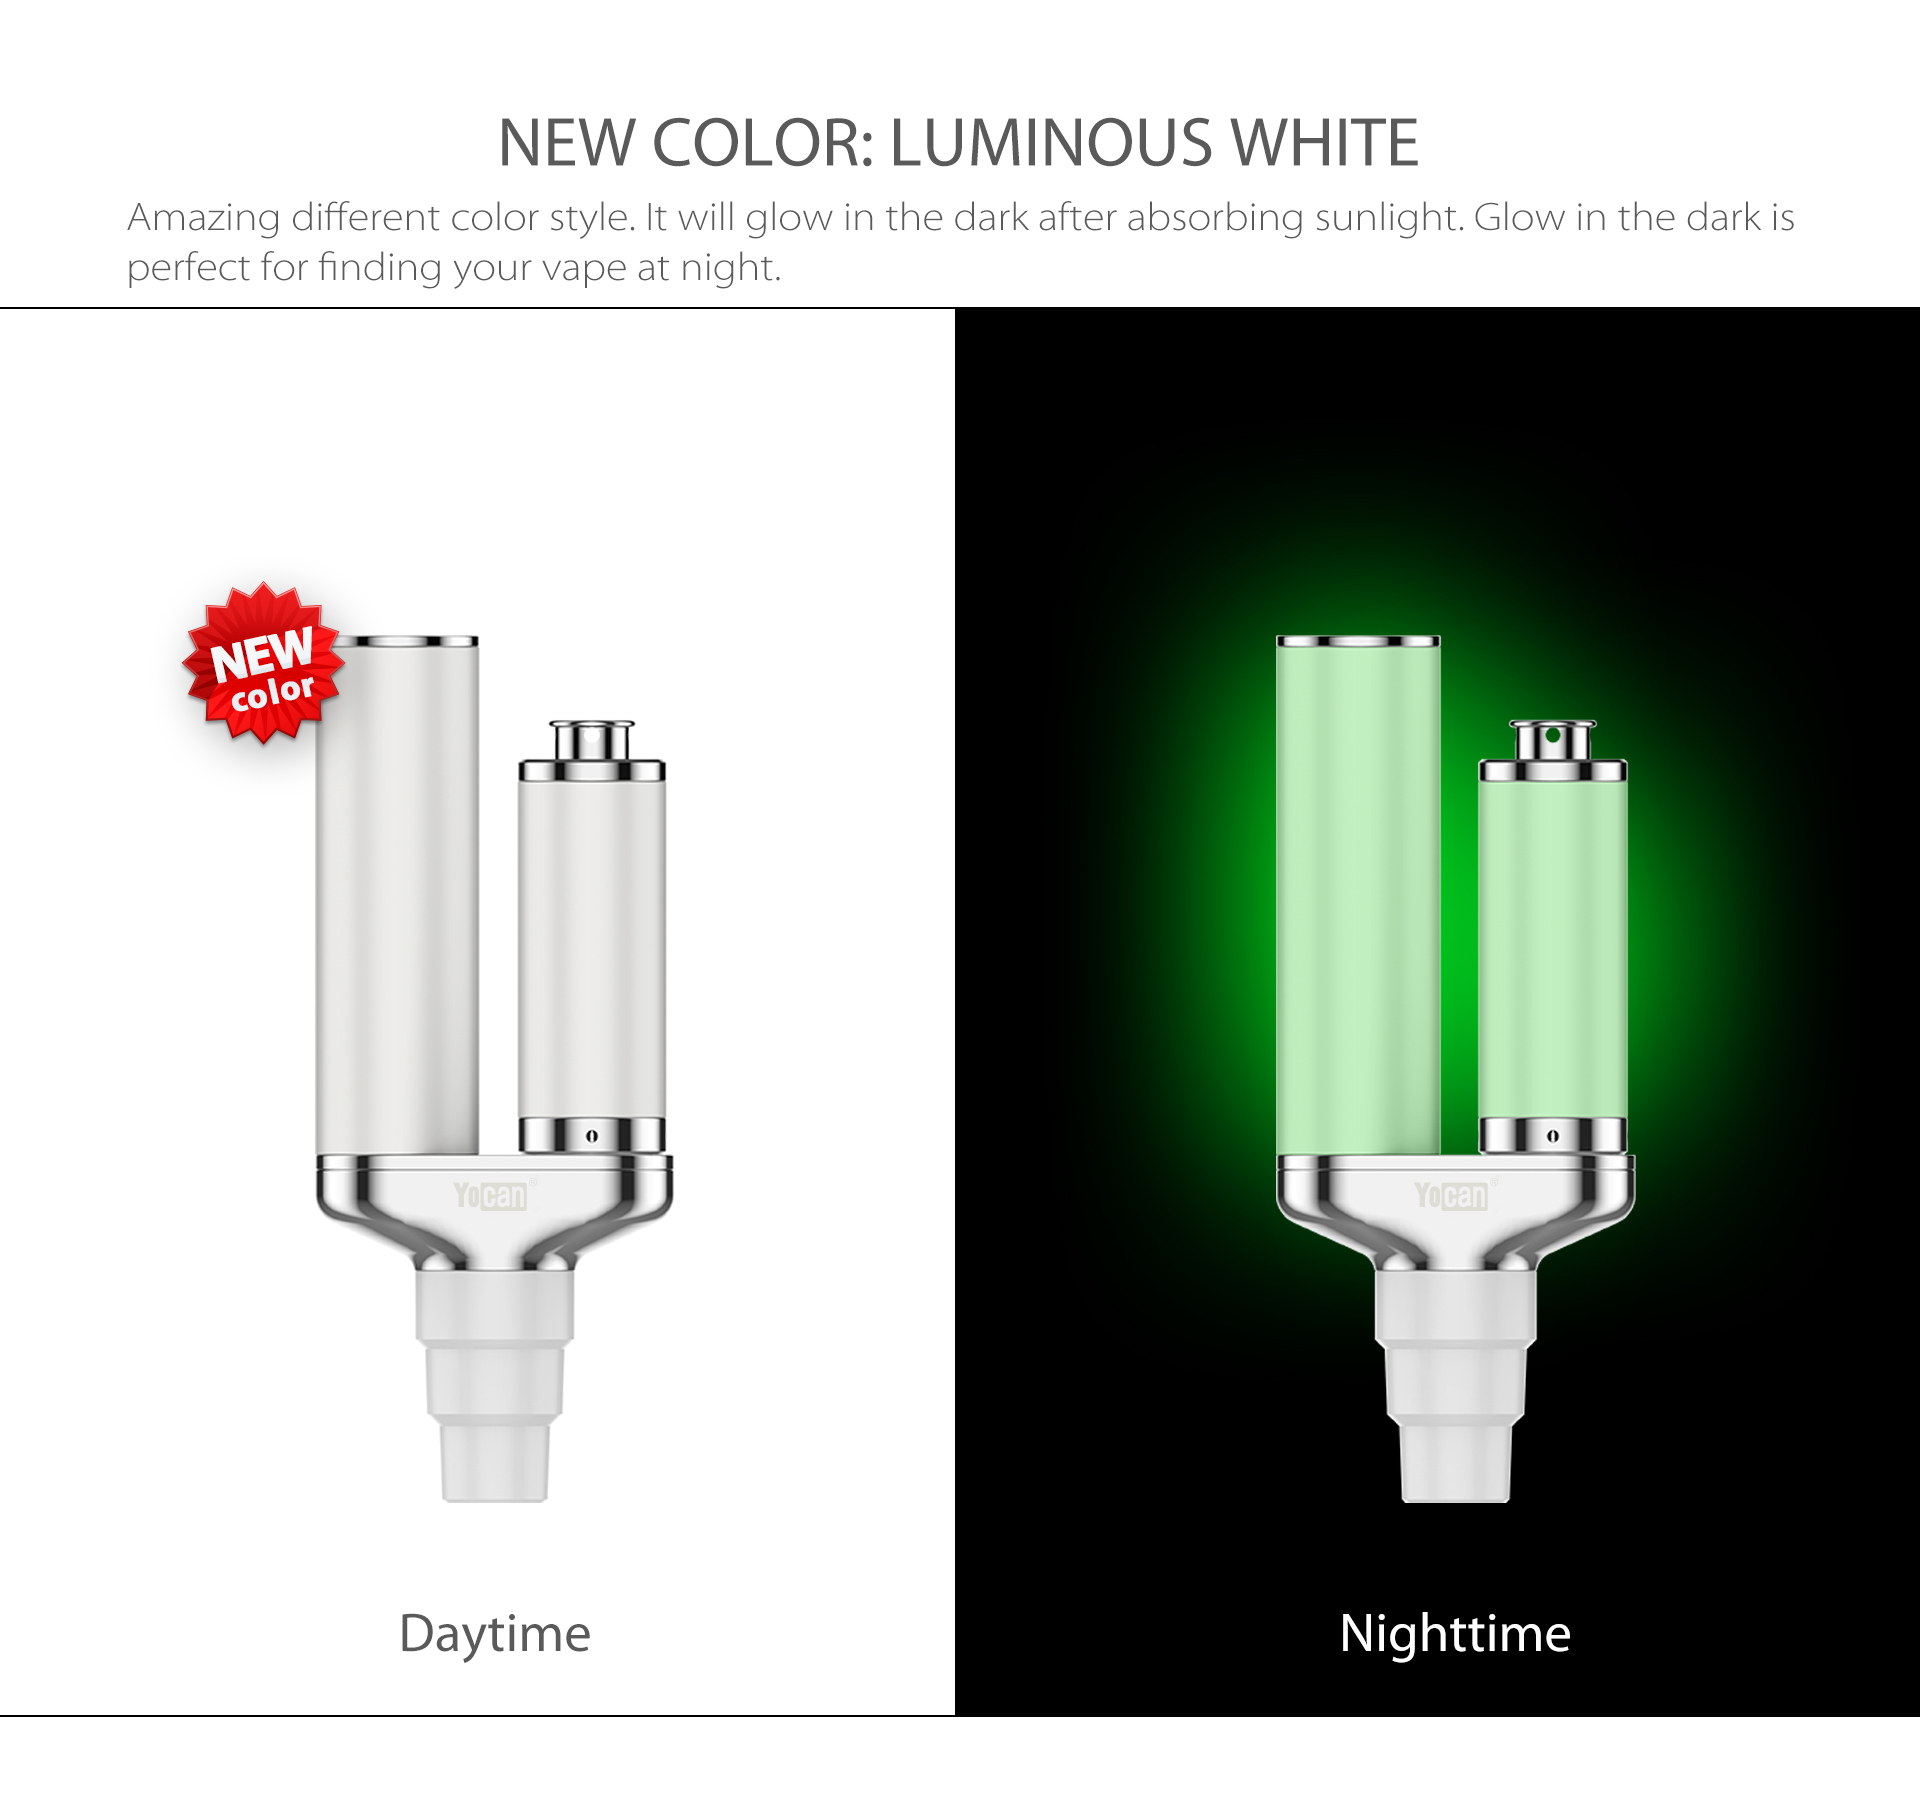 Yocan Torch XL White(Luminous) will glow in the dark after absorbing sunlight.